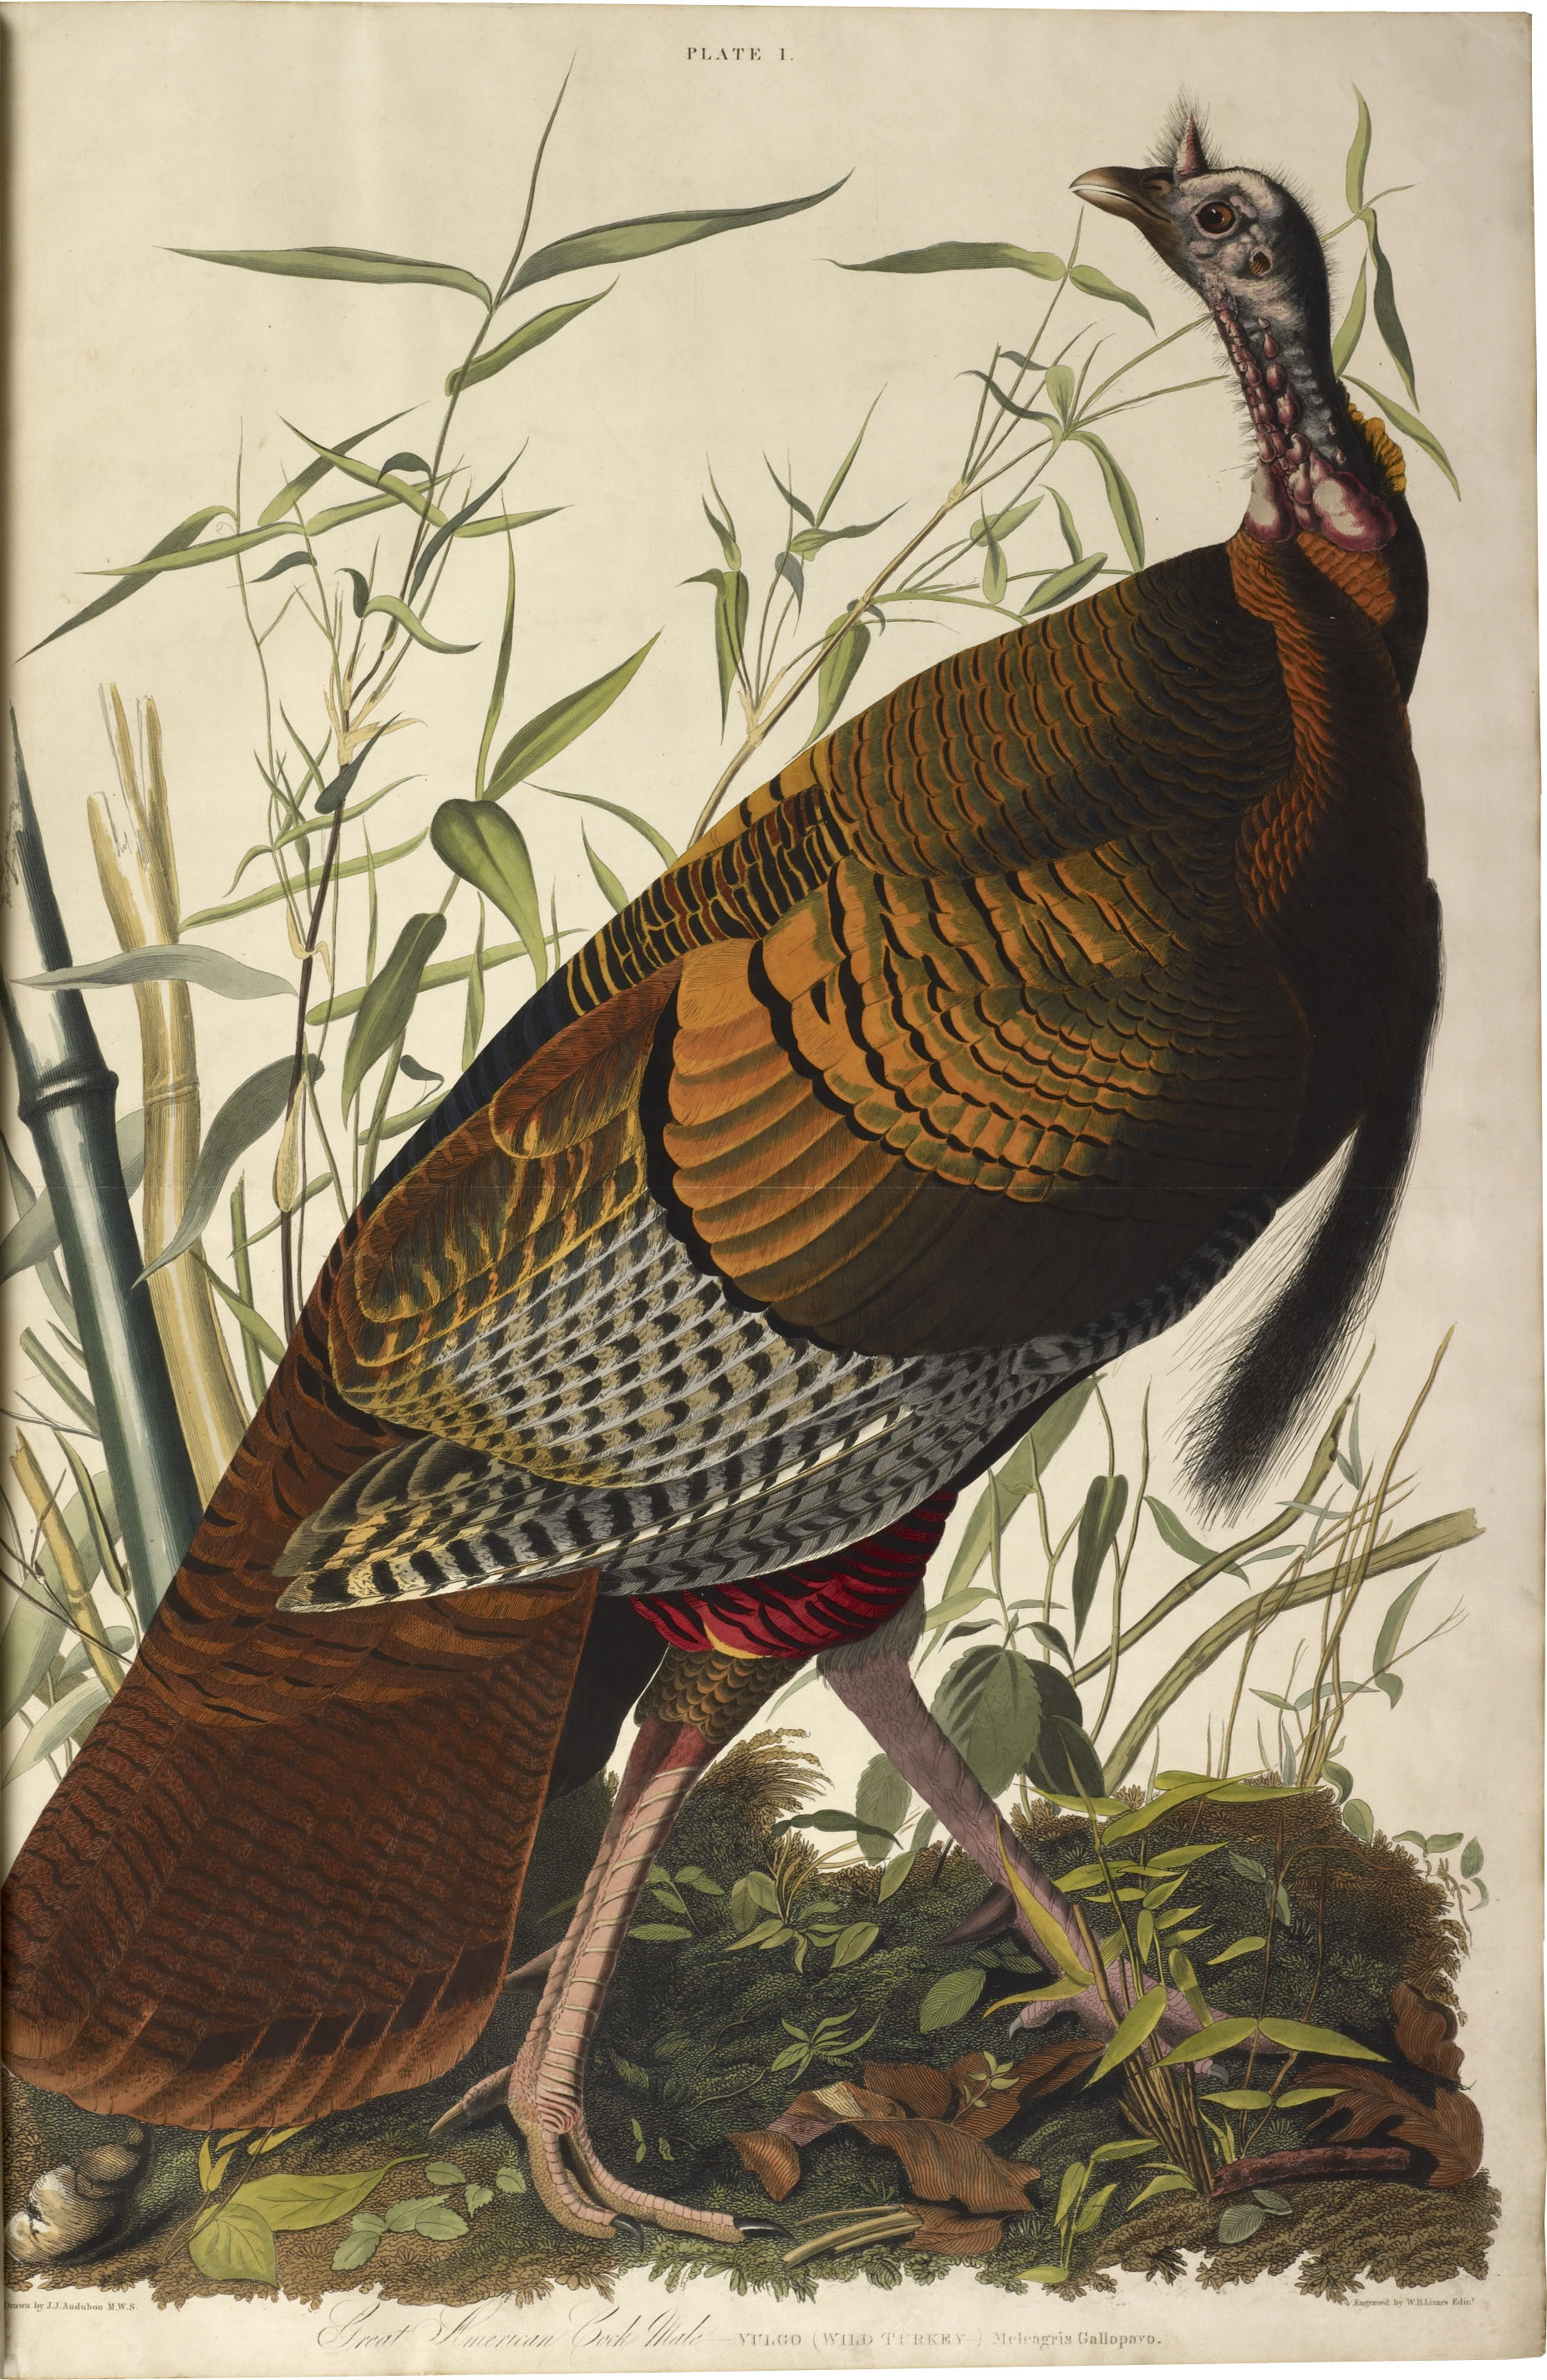 Audubon's Birds of America showing a wild turkey, plate 1